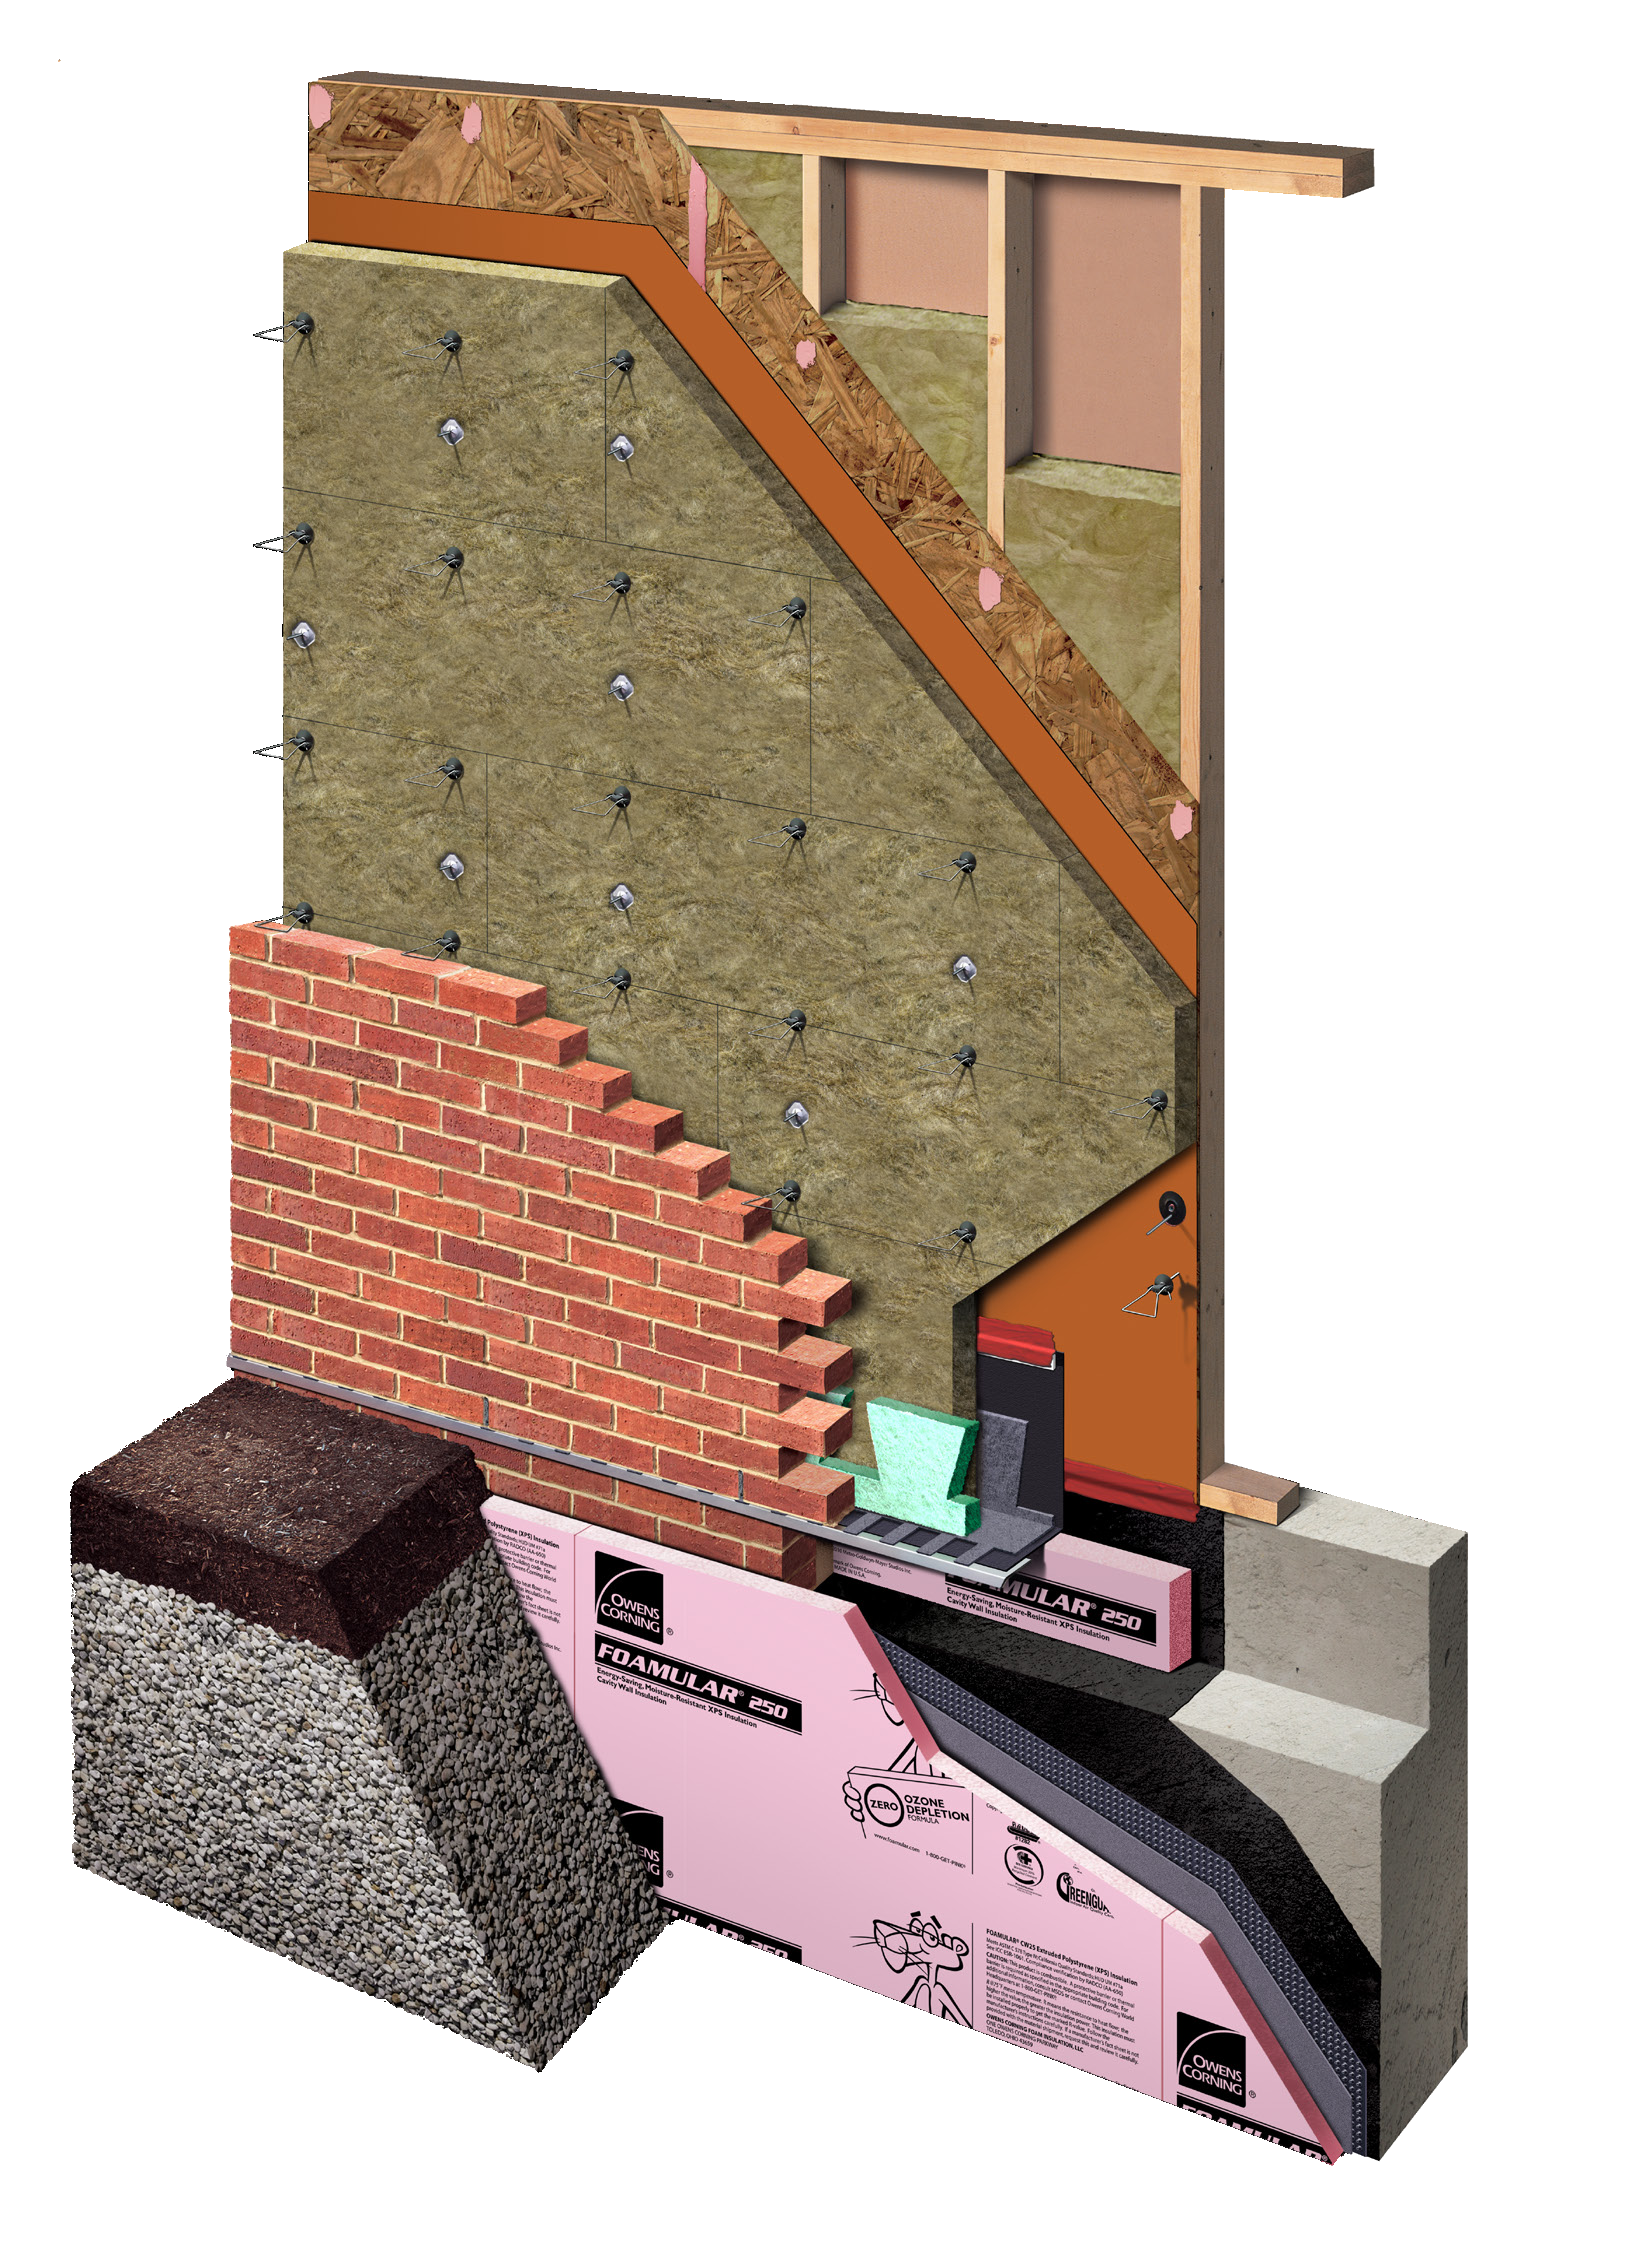 Wood Stud With Masonry Veneer And Fluid Or Sheet Awb With High Compressive Strength Mineral Wool Continuous Insulation Owens Corning Enclosure Solutions